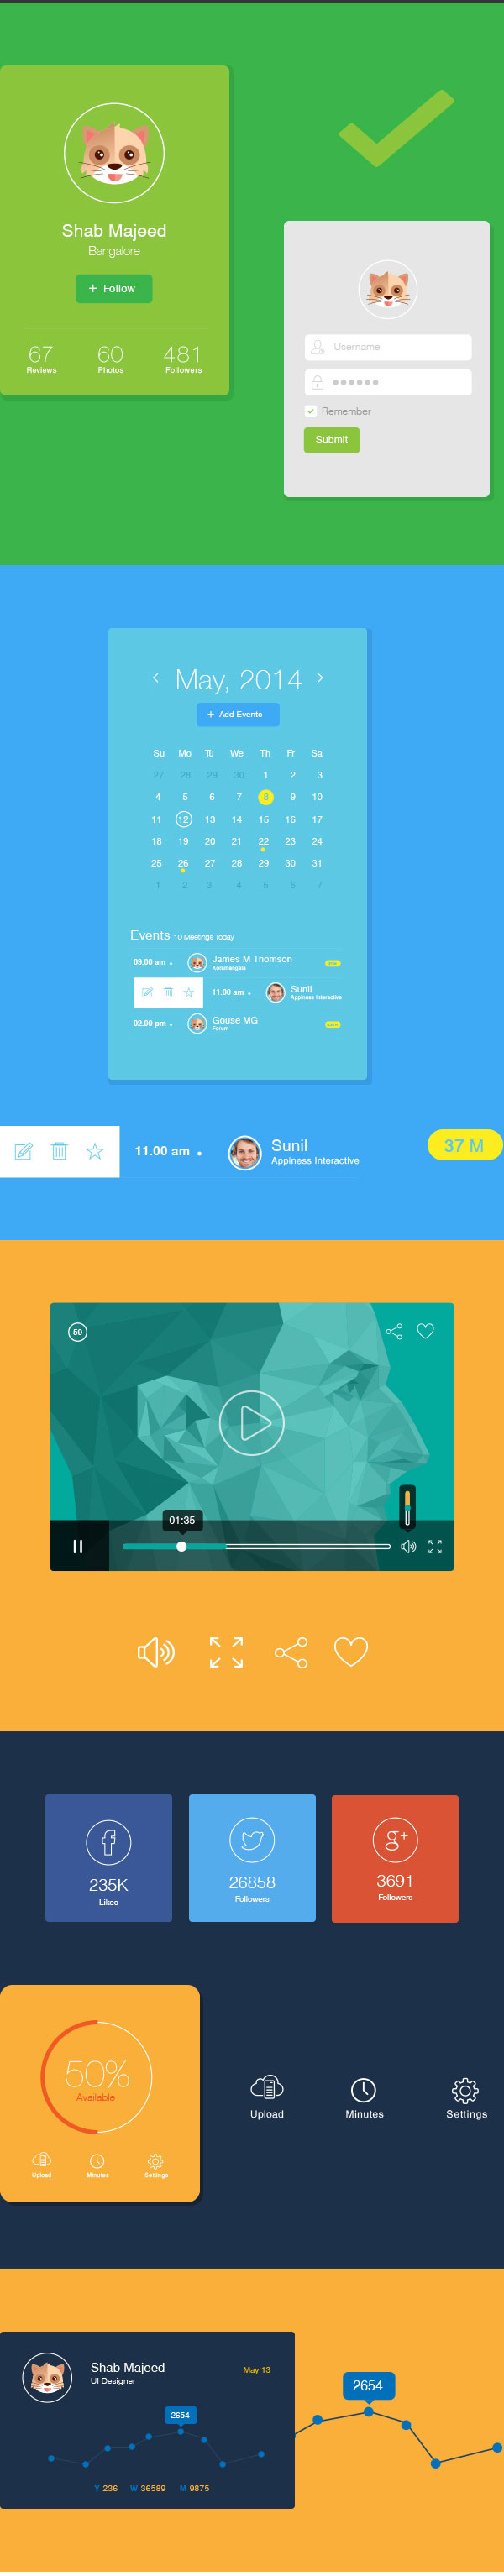 Flat UI Design Elements Vector AI